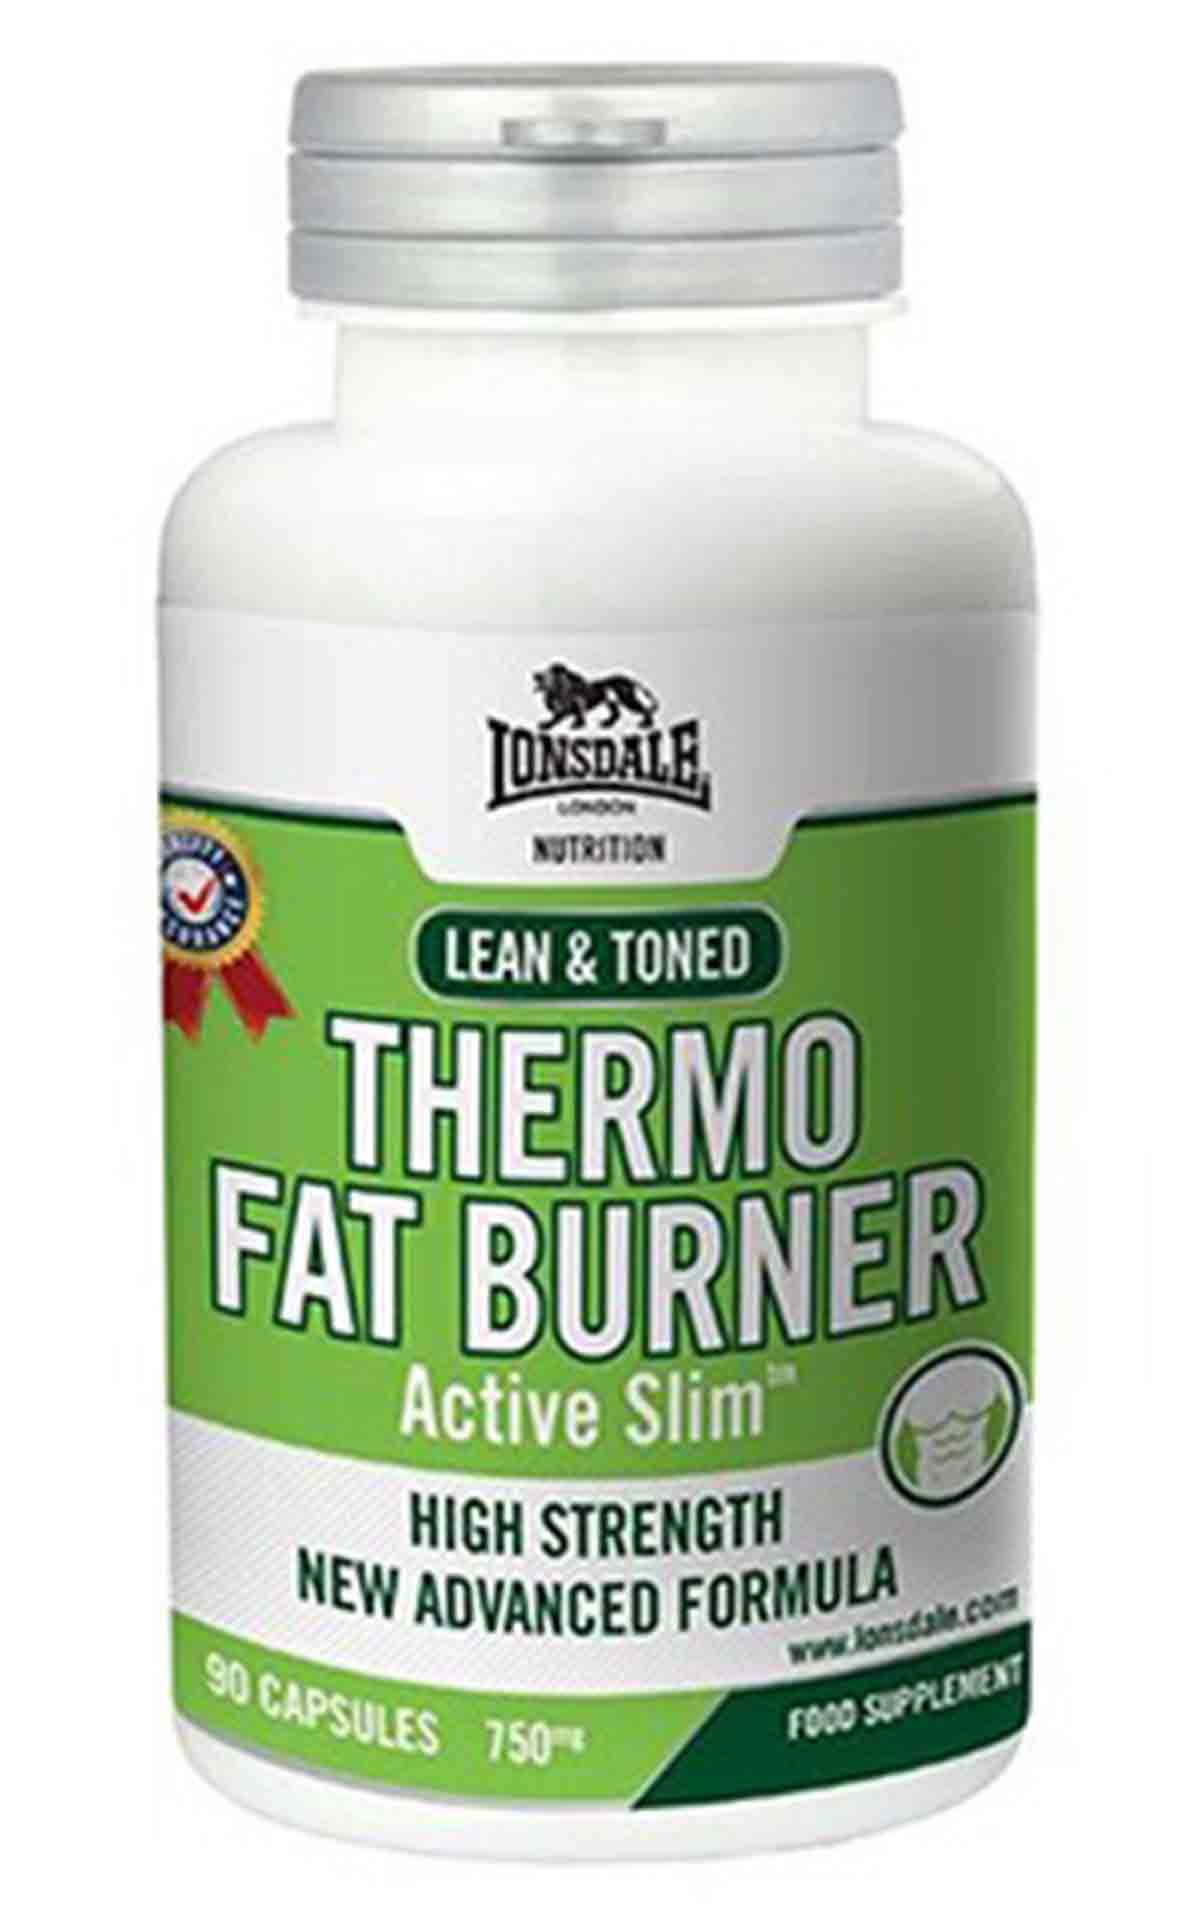 lonsdale thermo fat burner